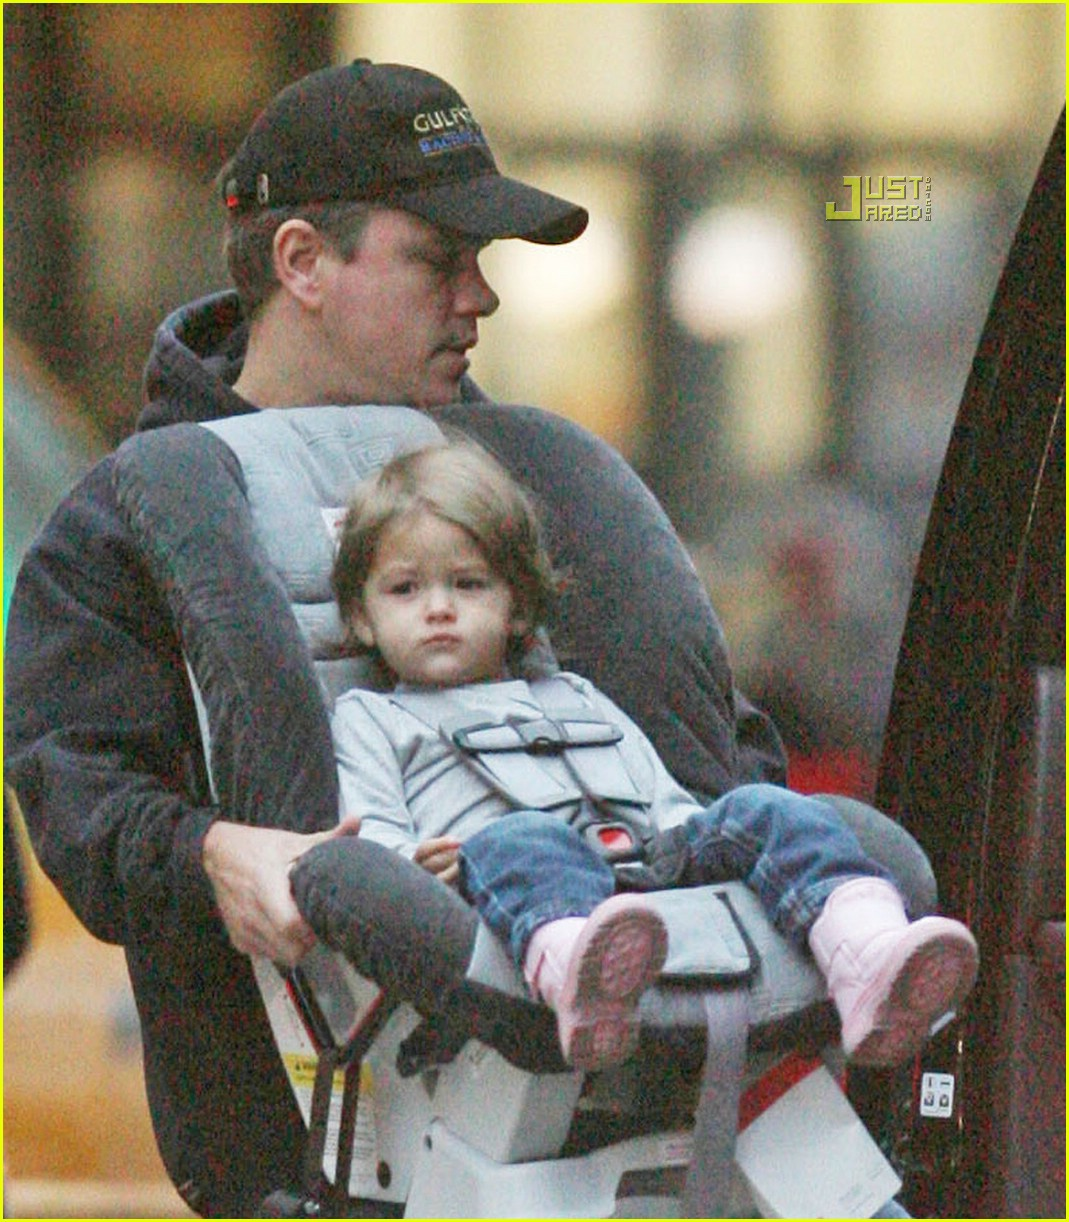 Isabella Damon is a Carseat Queen: Photo 815471 | Celebrity Babies ...: http://www.justjared.com/photo-gallery/815471/isabella-damon-carseat-queen-02/